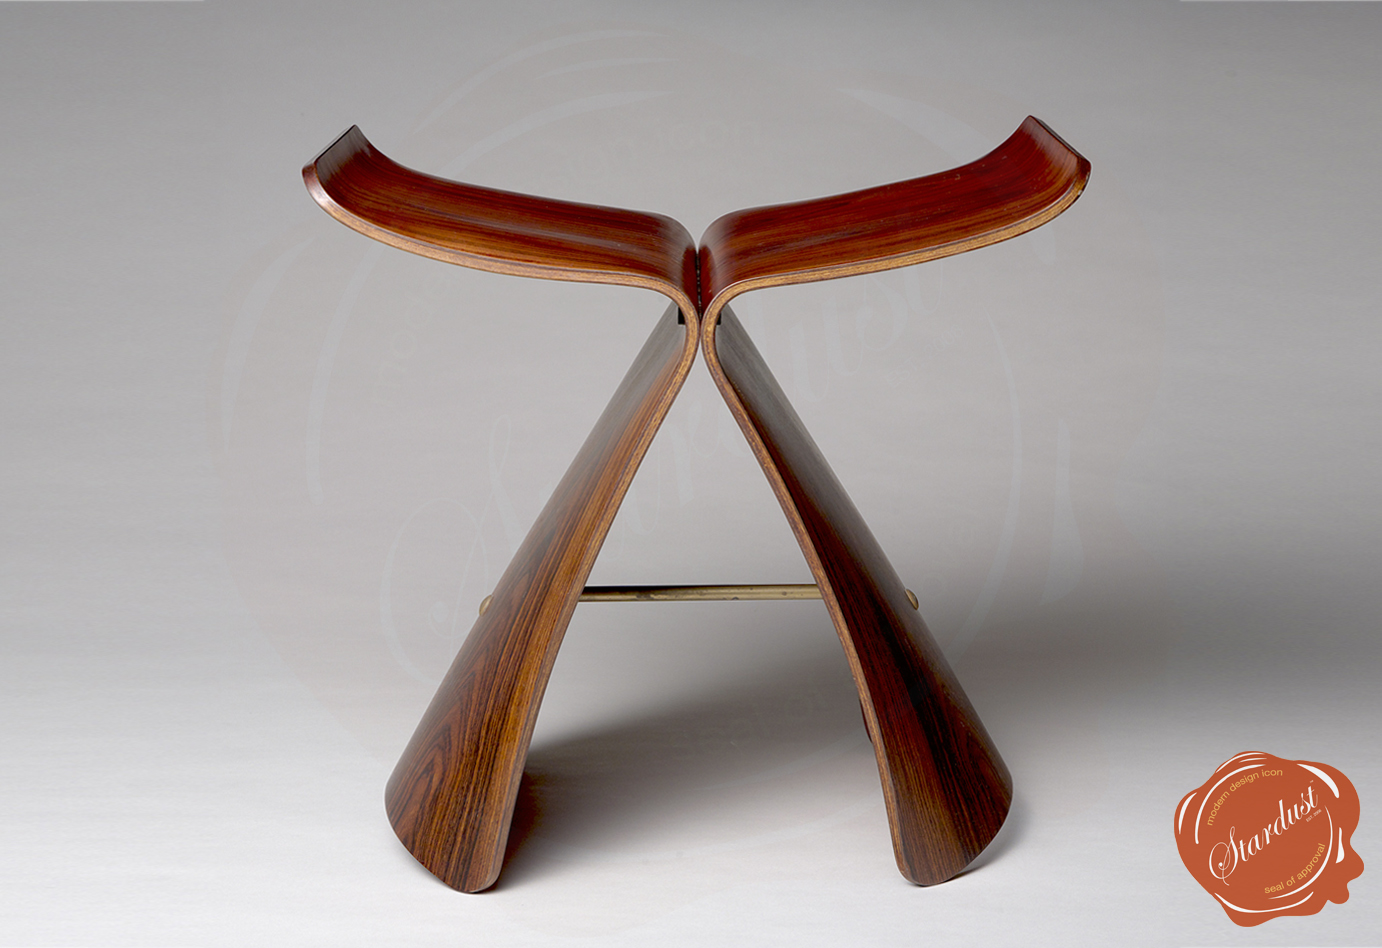 Butterfly chair sori yanagi - Sori Yanagi Butterfly Stool